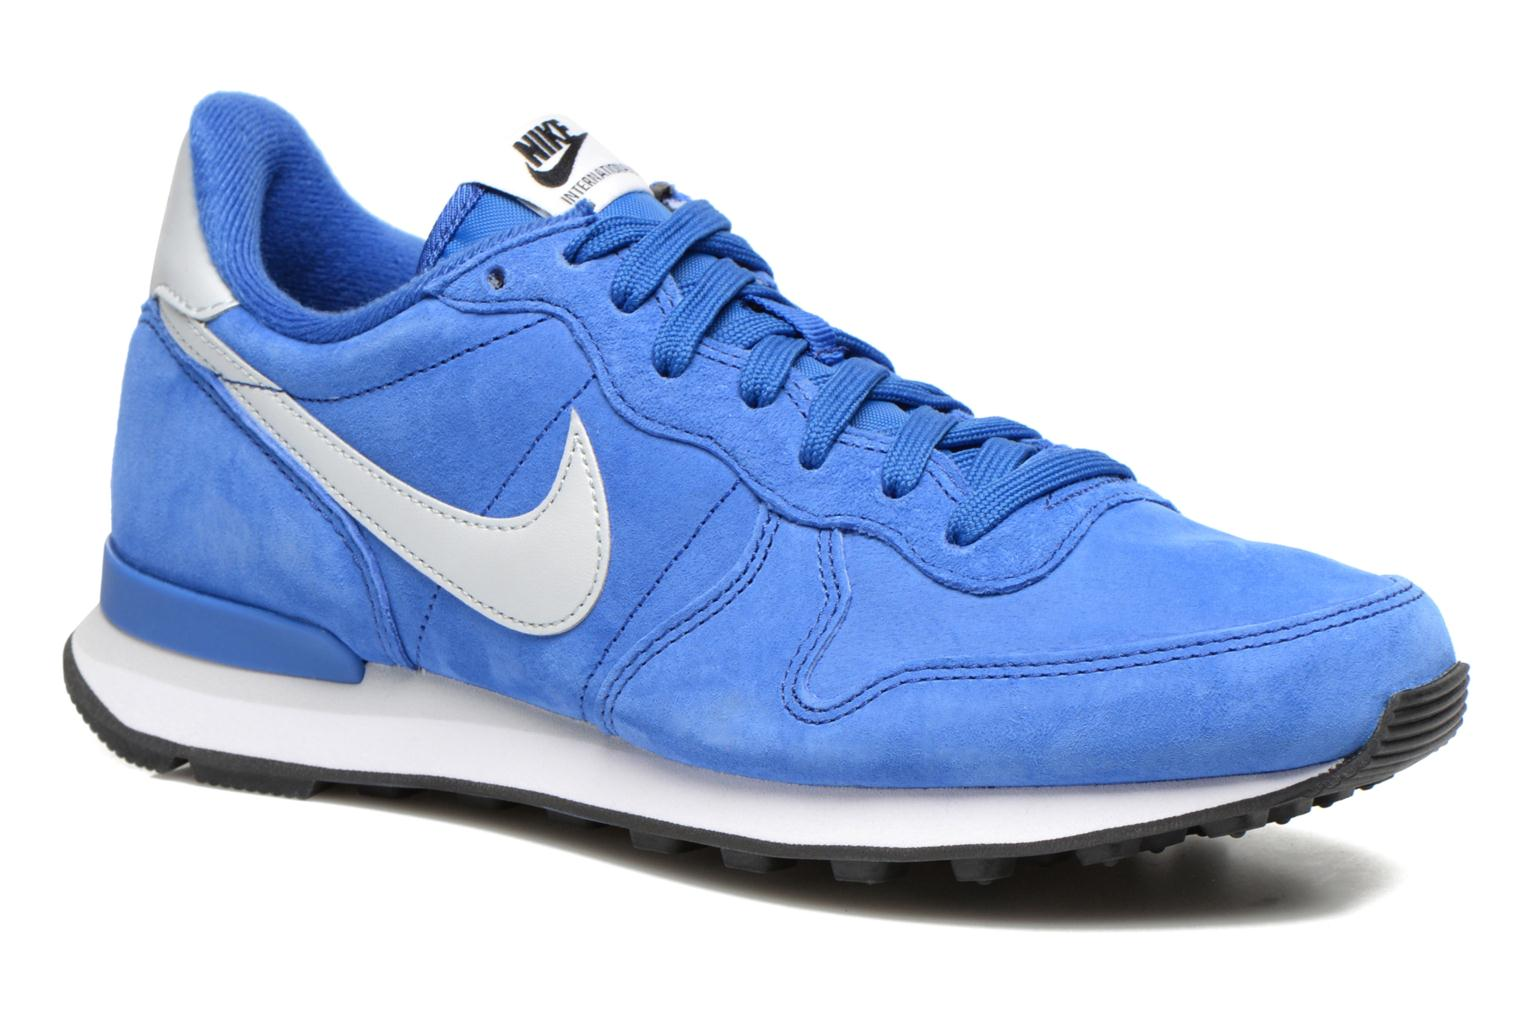 Nike Internationalist Leather Game Royal/Pr Pltnm-Blck-Wht